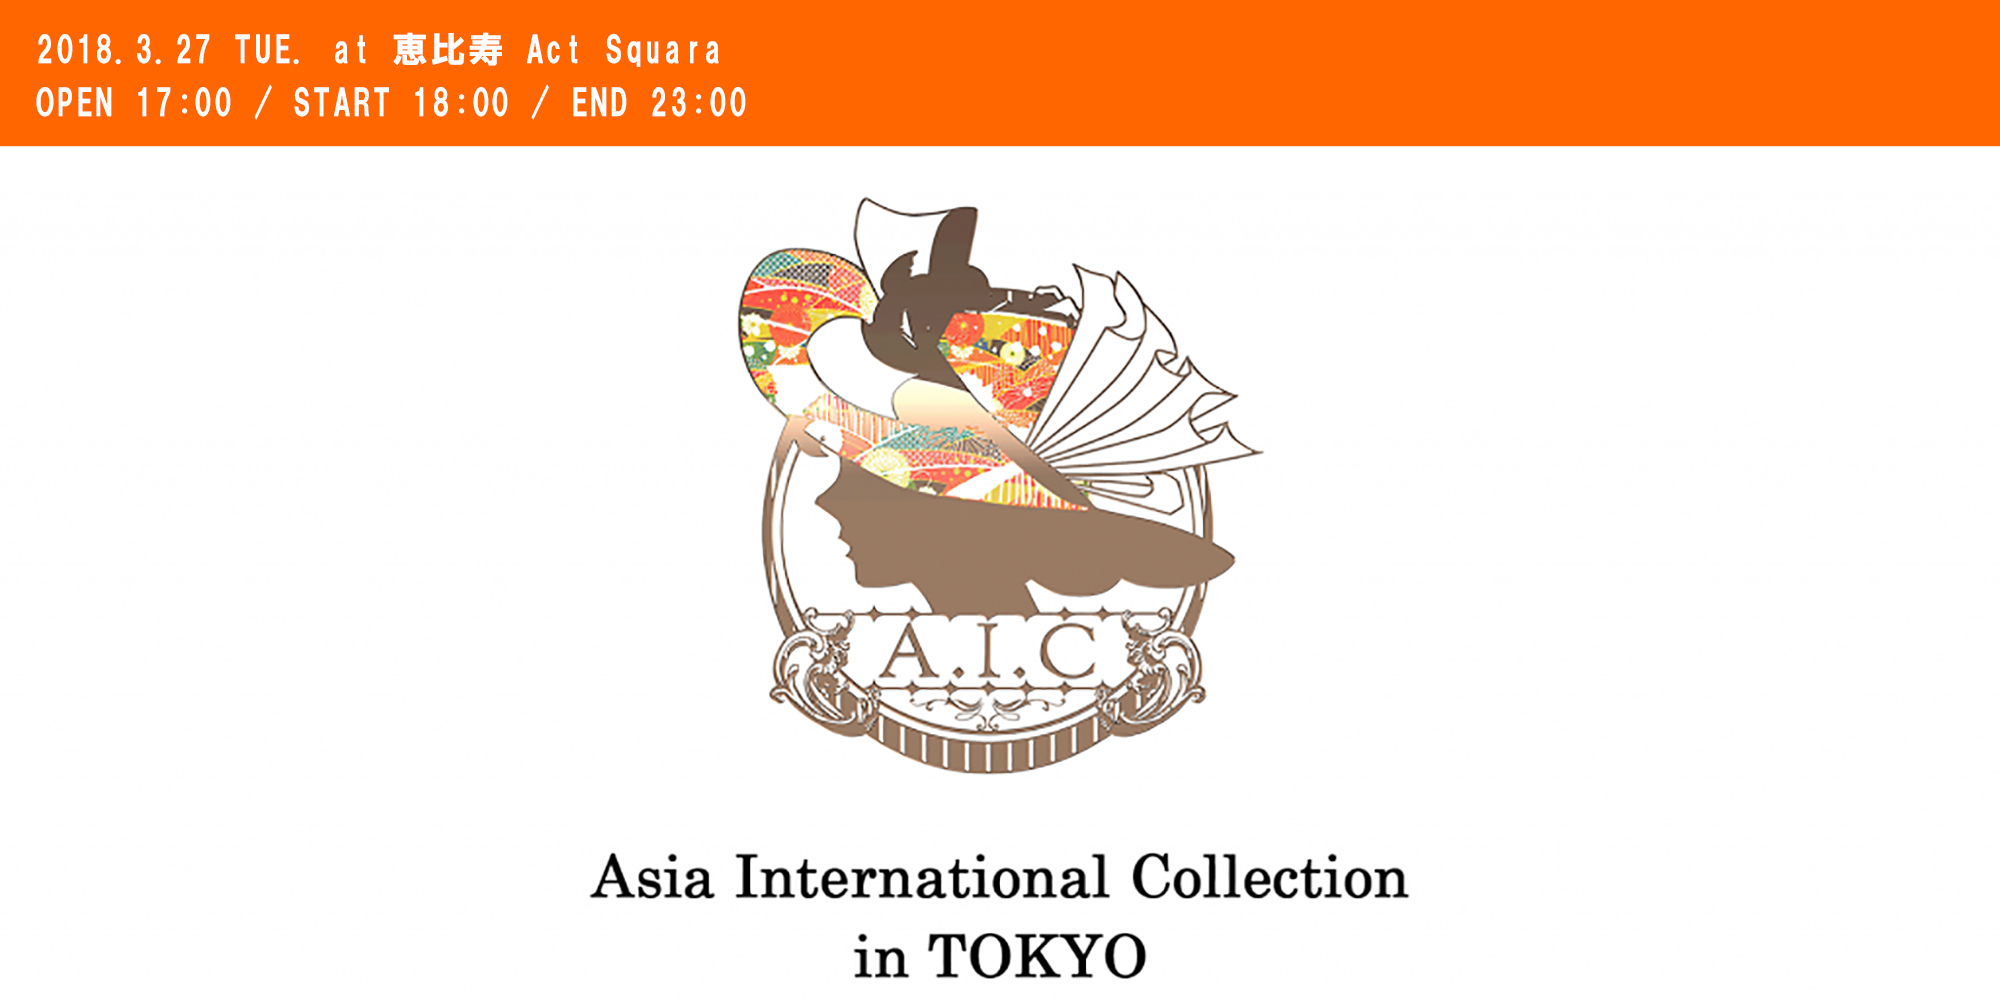 Asia International Collection in TOKYO